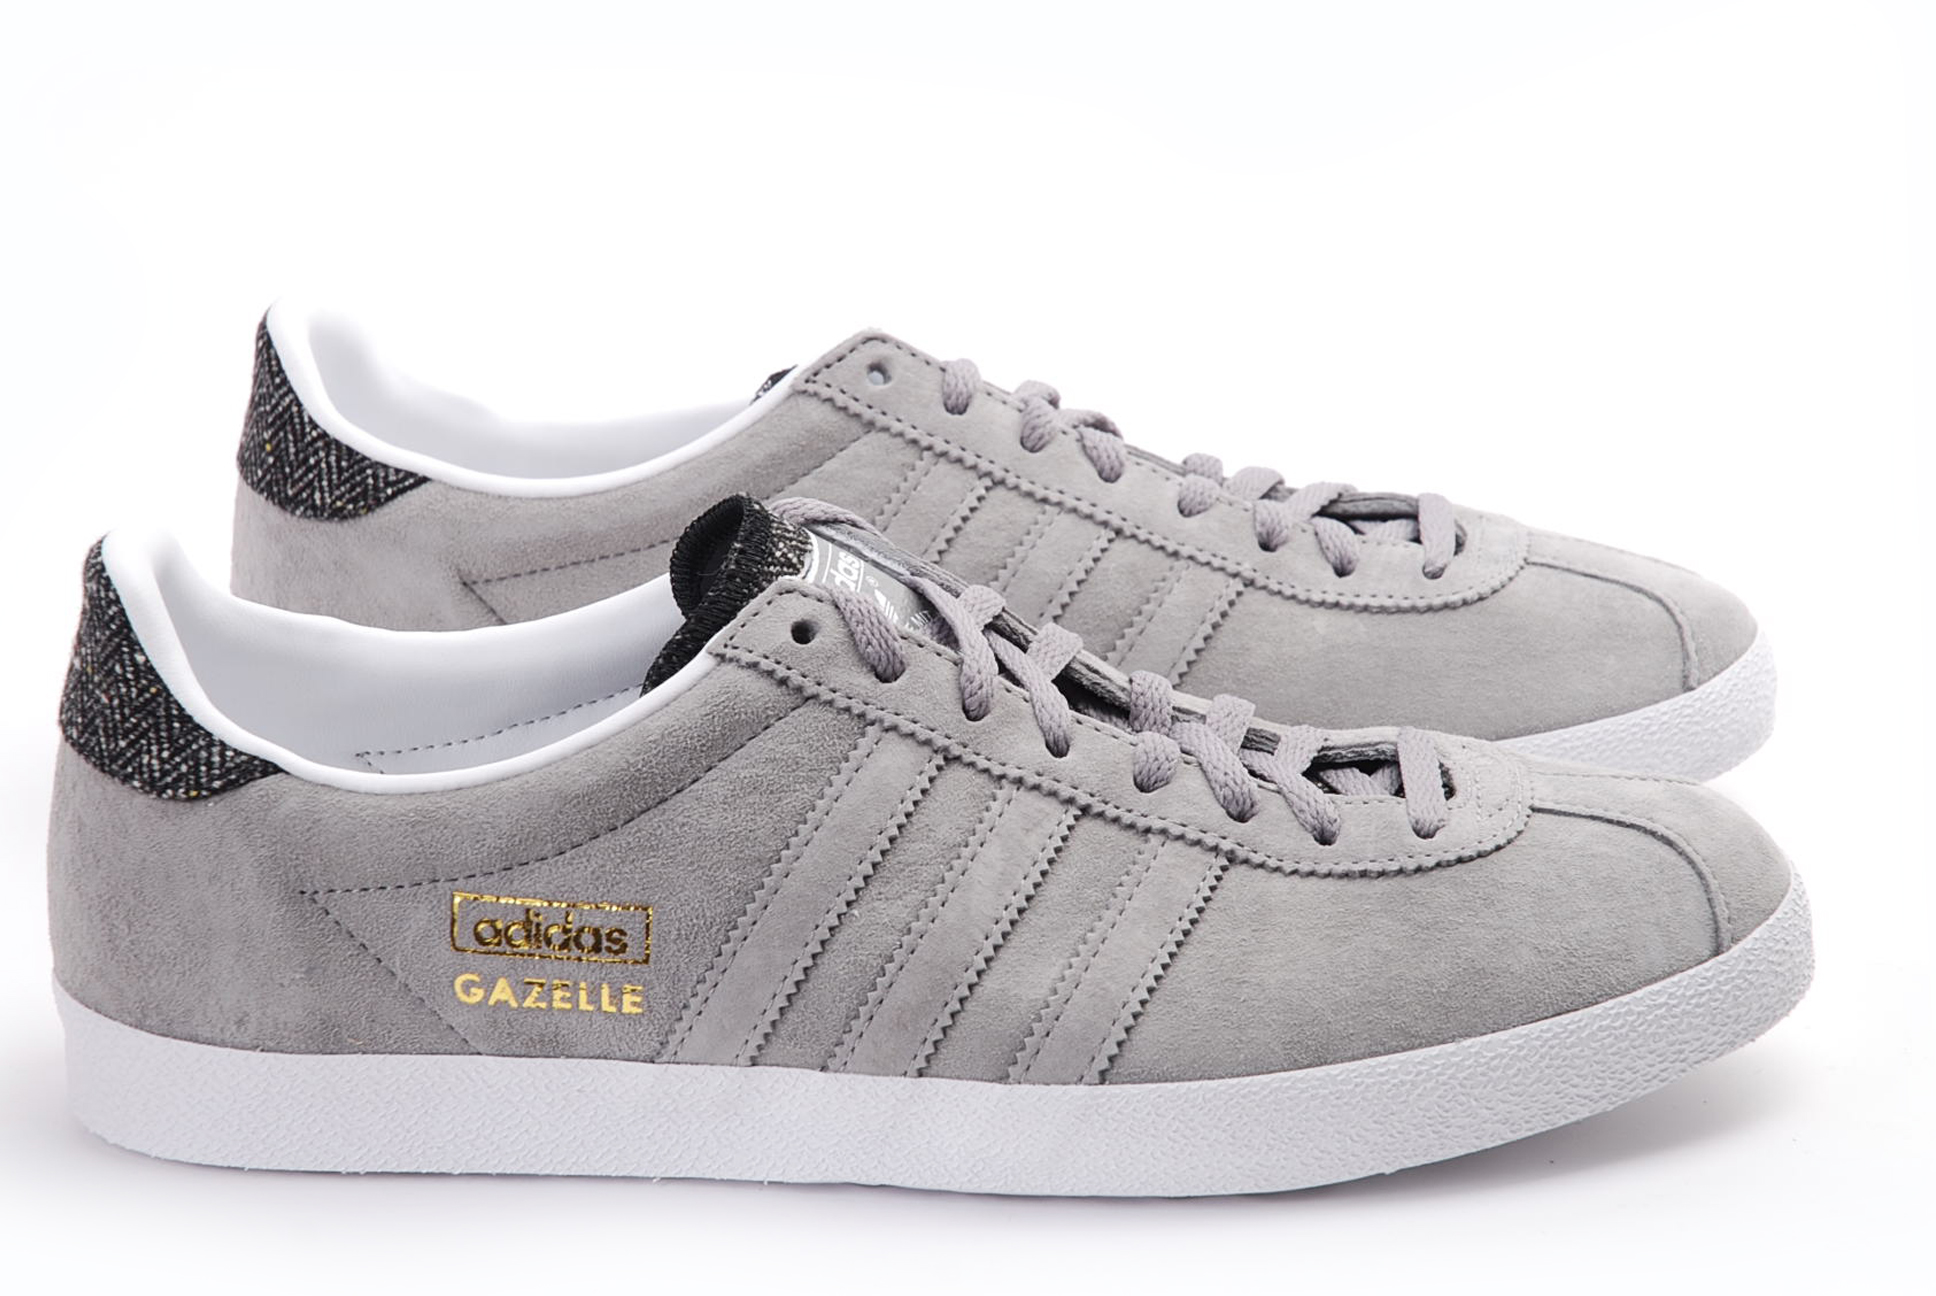 leather adidas gazelle trainers for men